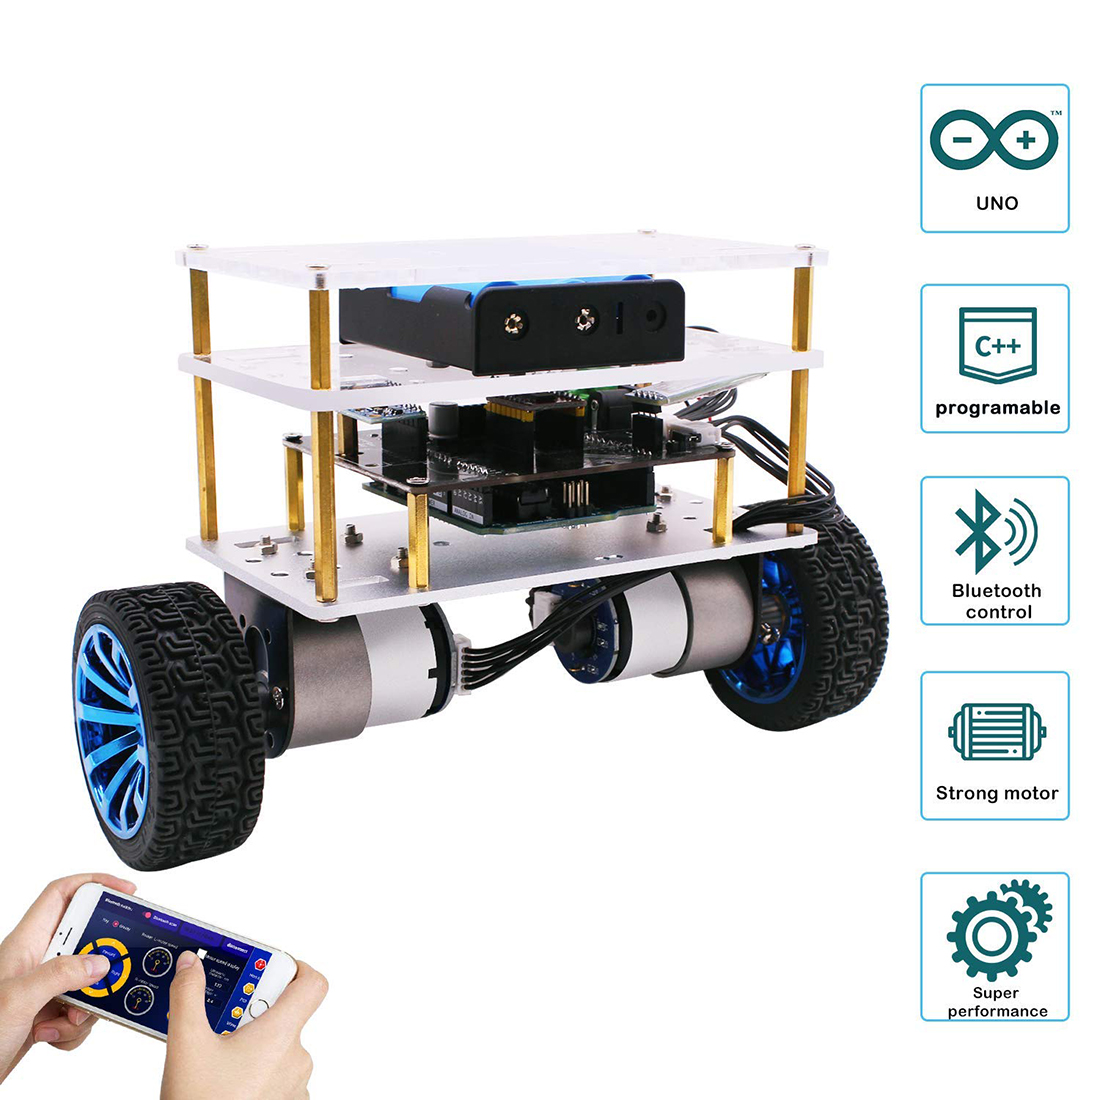 US $115 78 36% OFF|Balance Robot Car Compatible with Arduino Electronics  Programmable Kit Education Robotics Support C Language for Kids (R3)-in  Model